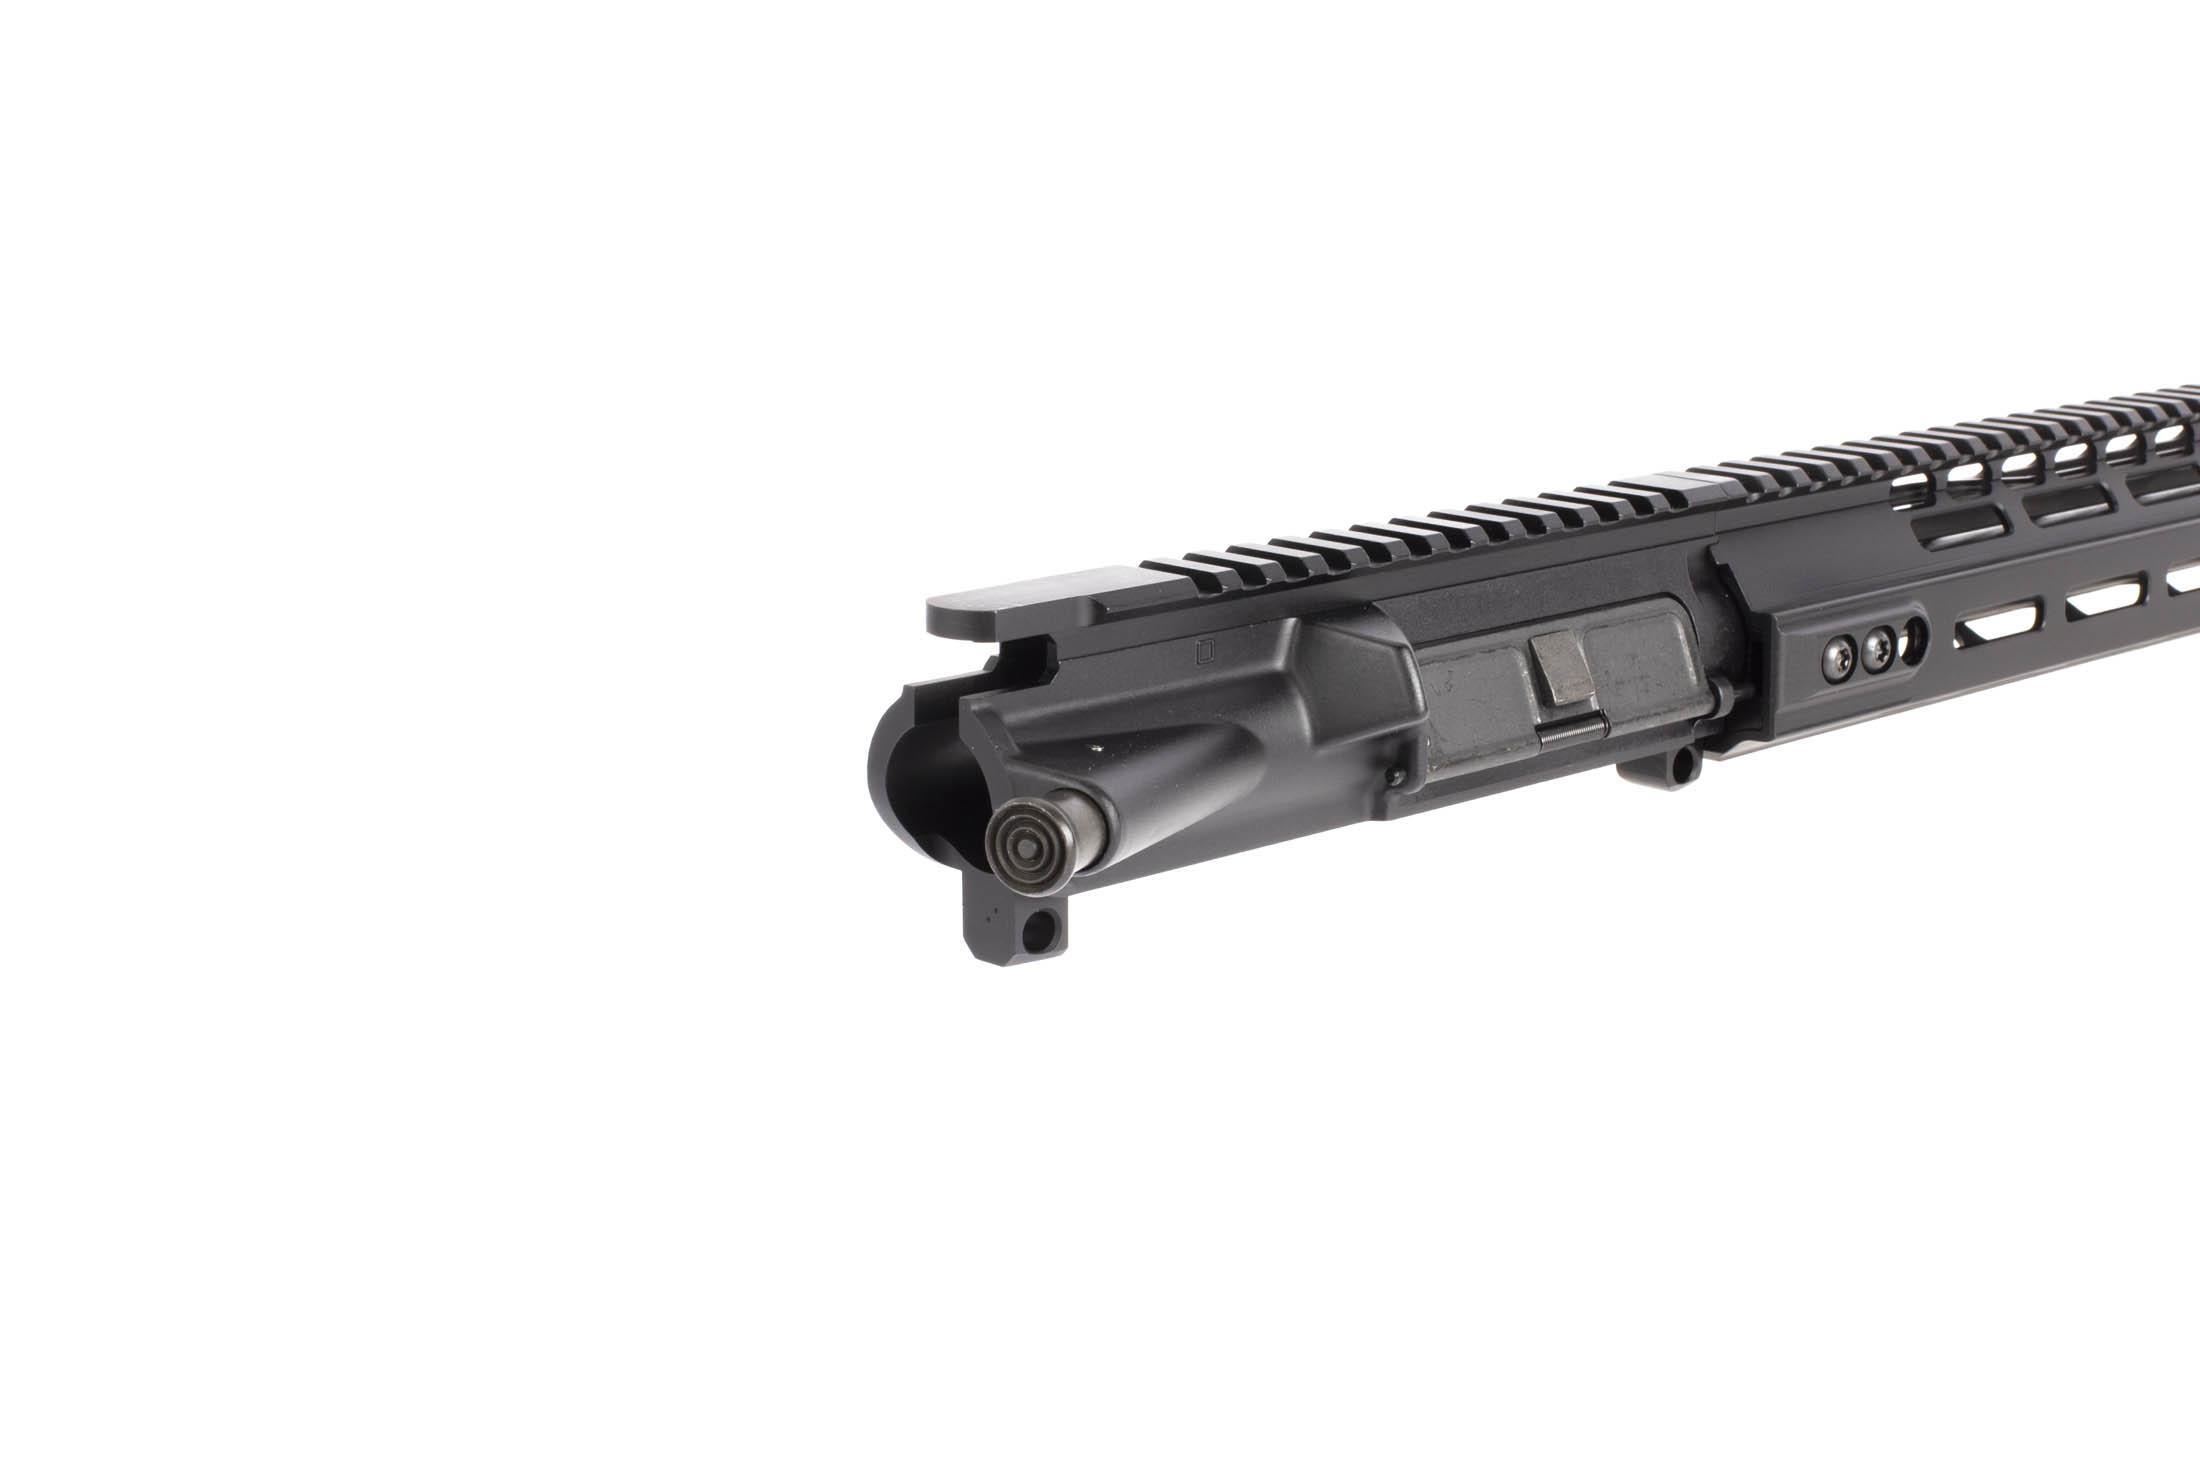 The ar15 complete barreled upper receiver from KDG and Primary arms has a full length picatinny rail